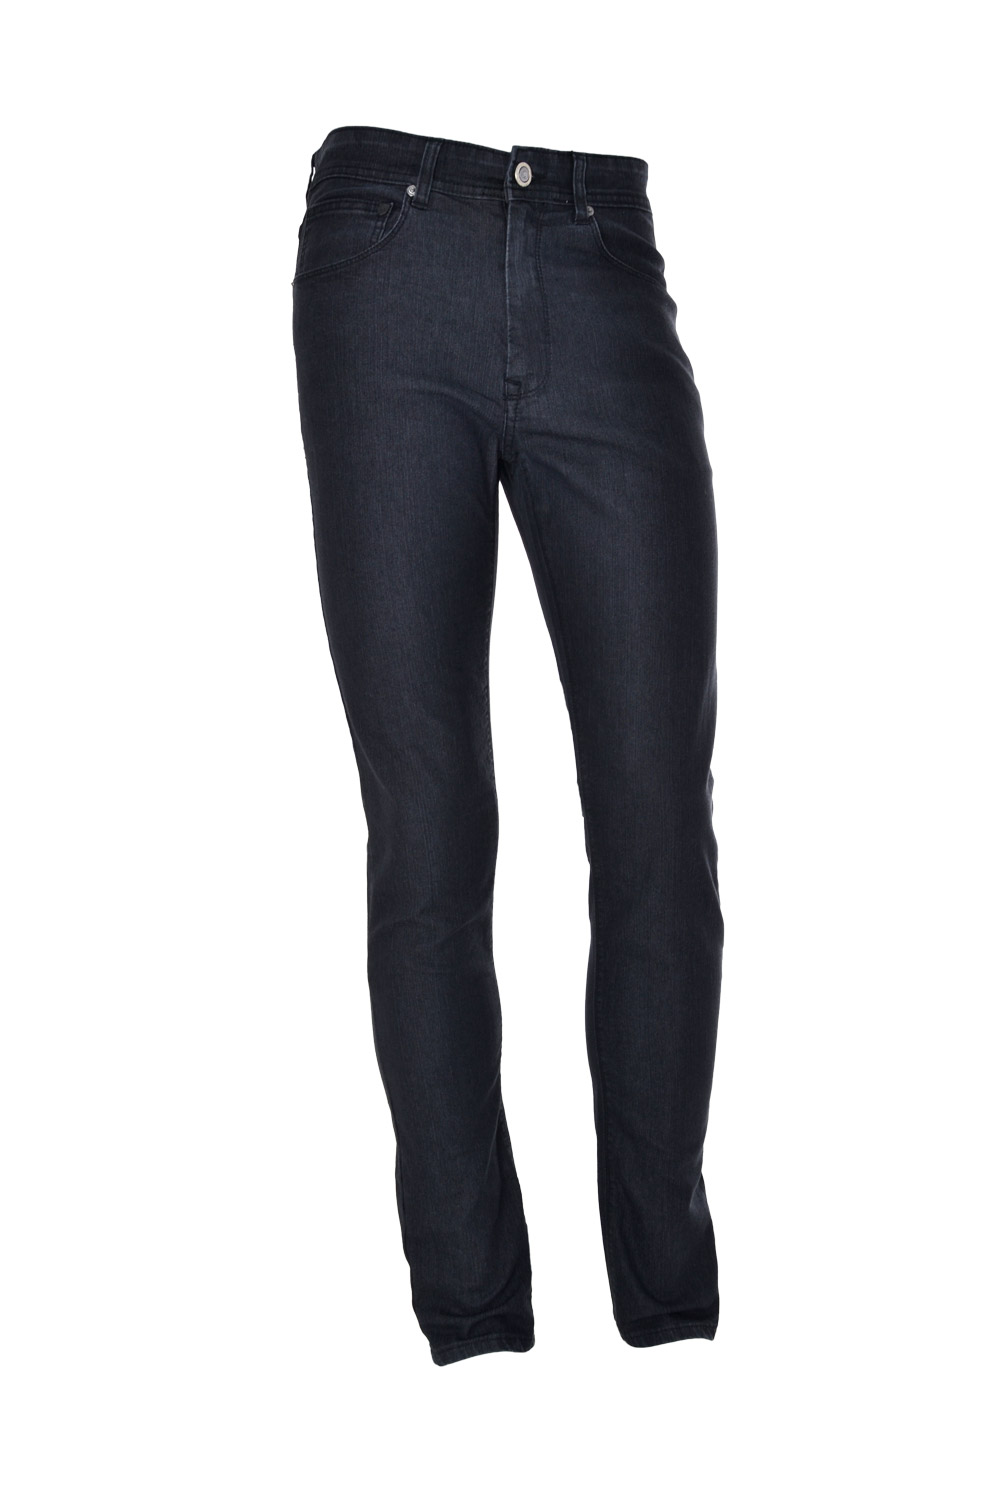 CALÇA JEANS BLUES SLIM POLIALGODAO & ELASTANO STRETCH LISO BLACK BLACK